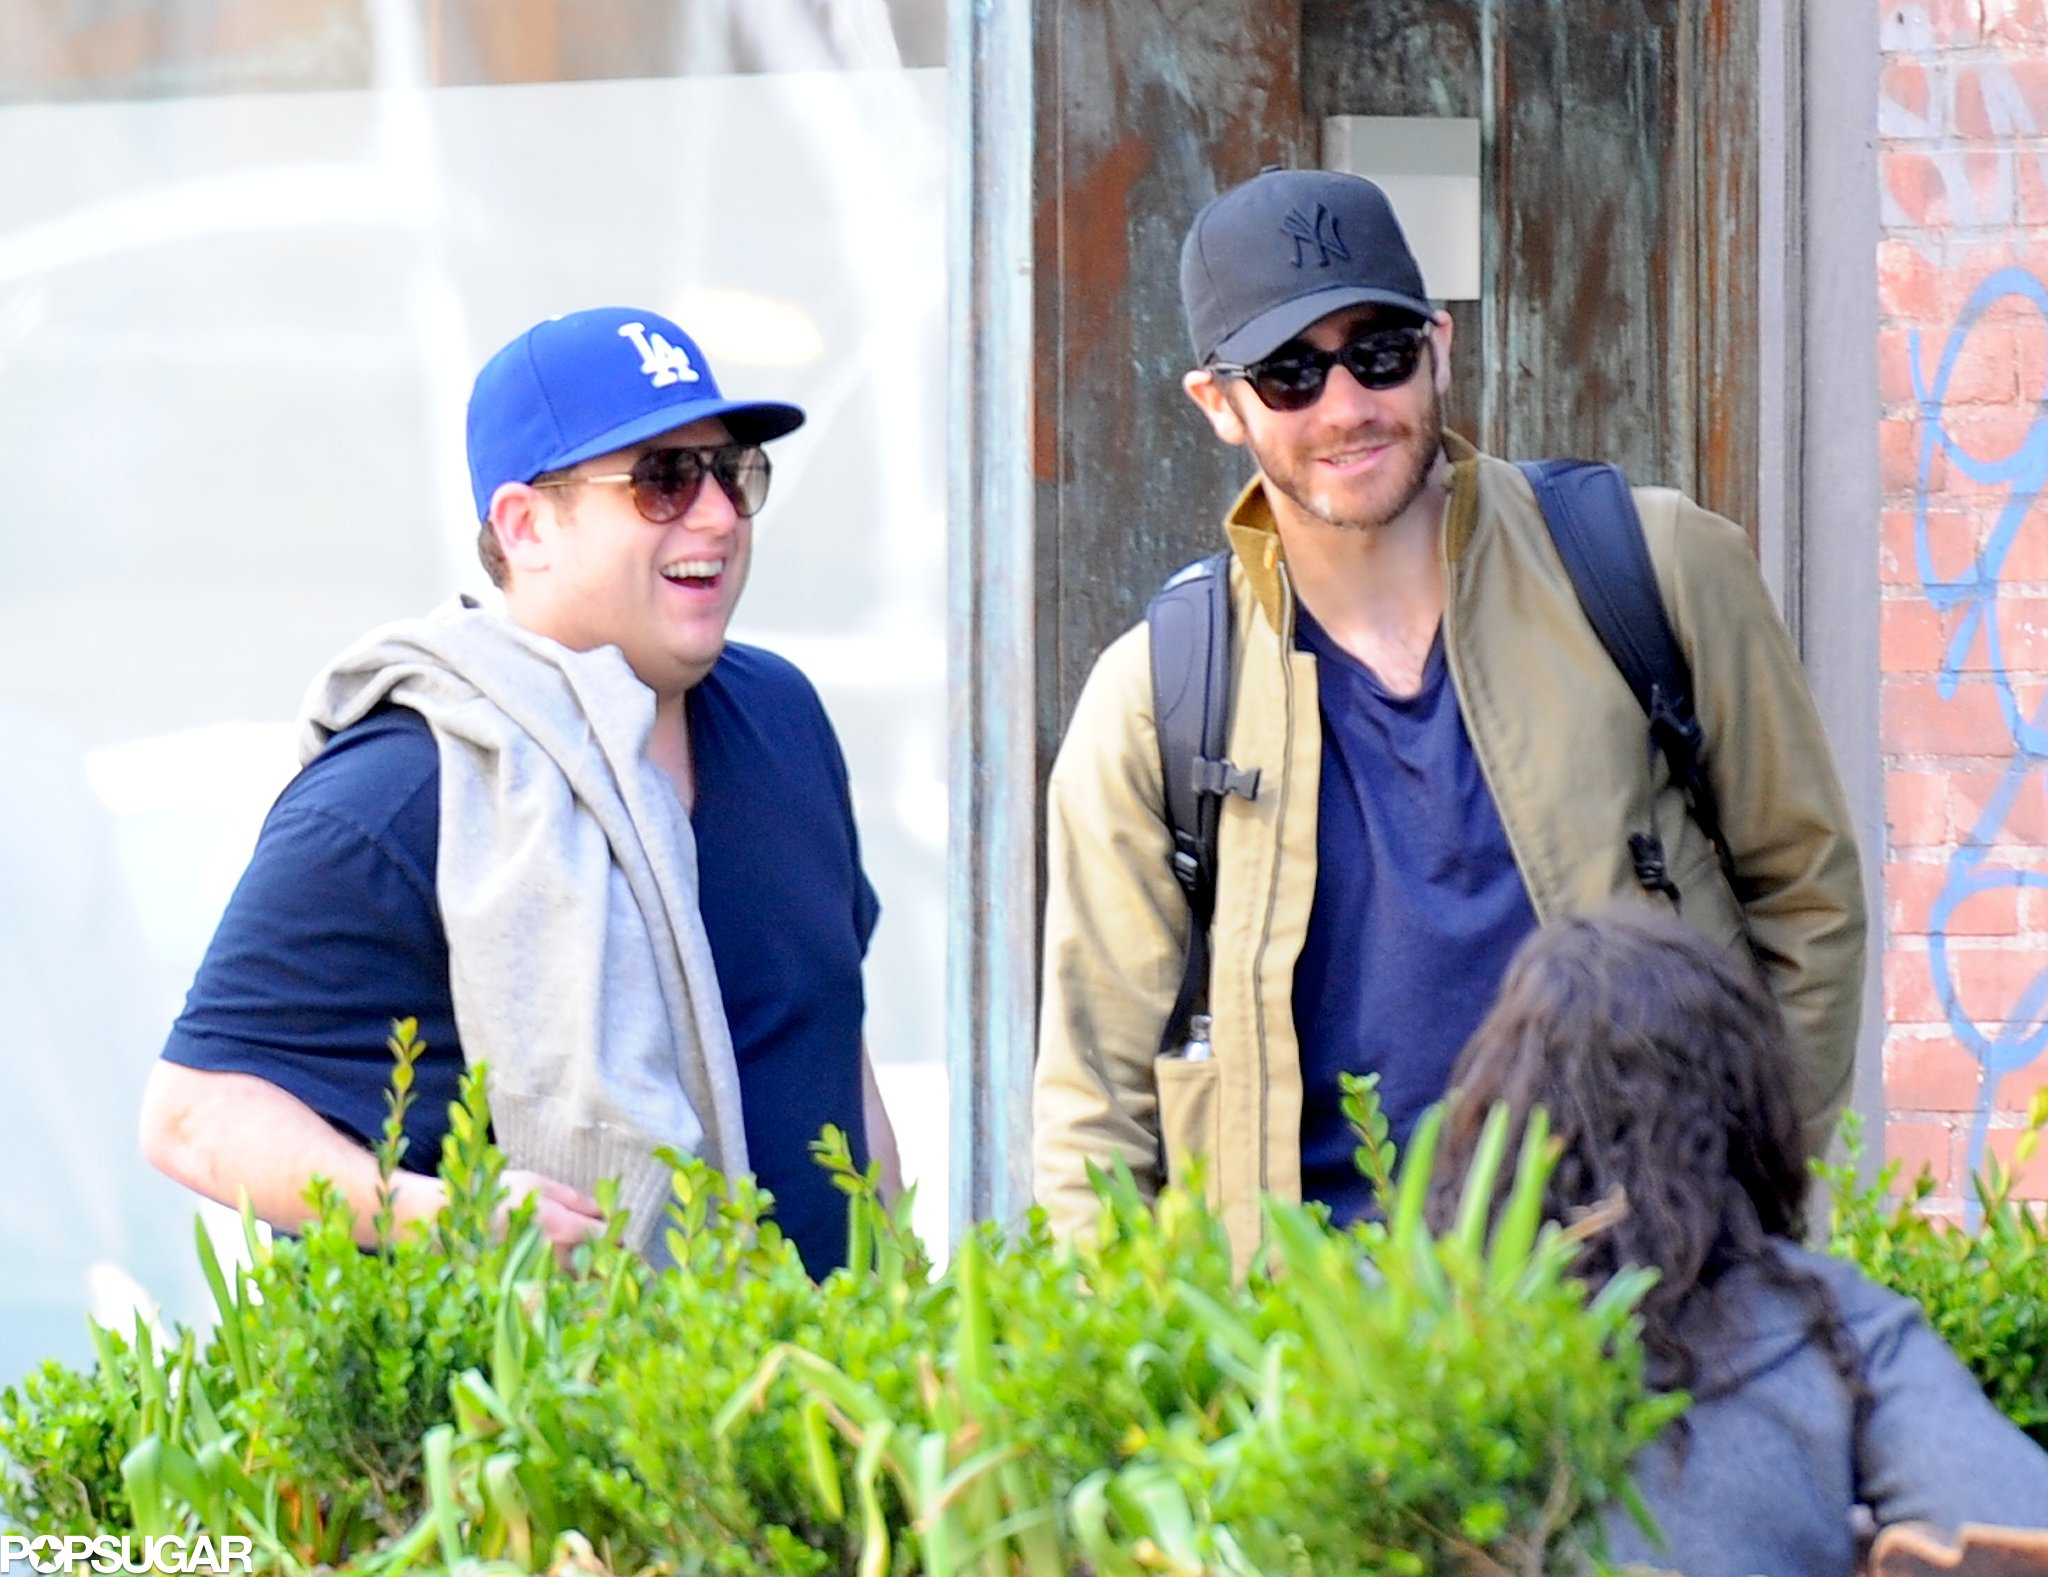 Later that day, Jonah Hill was the lucky guy to share a laugh with Jake Gyllenhaal at lunch.